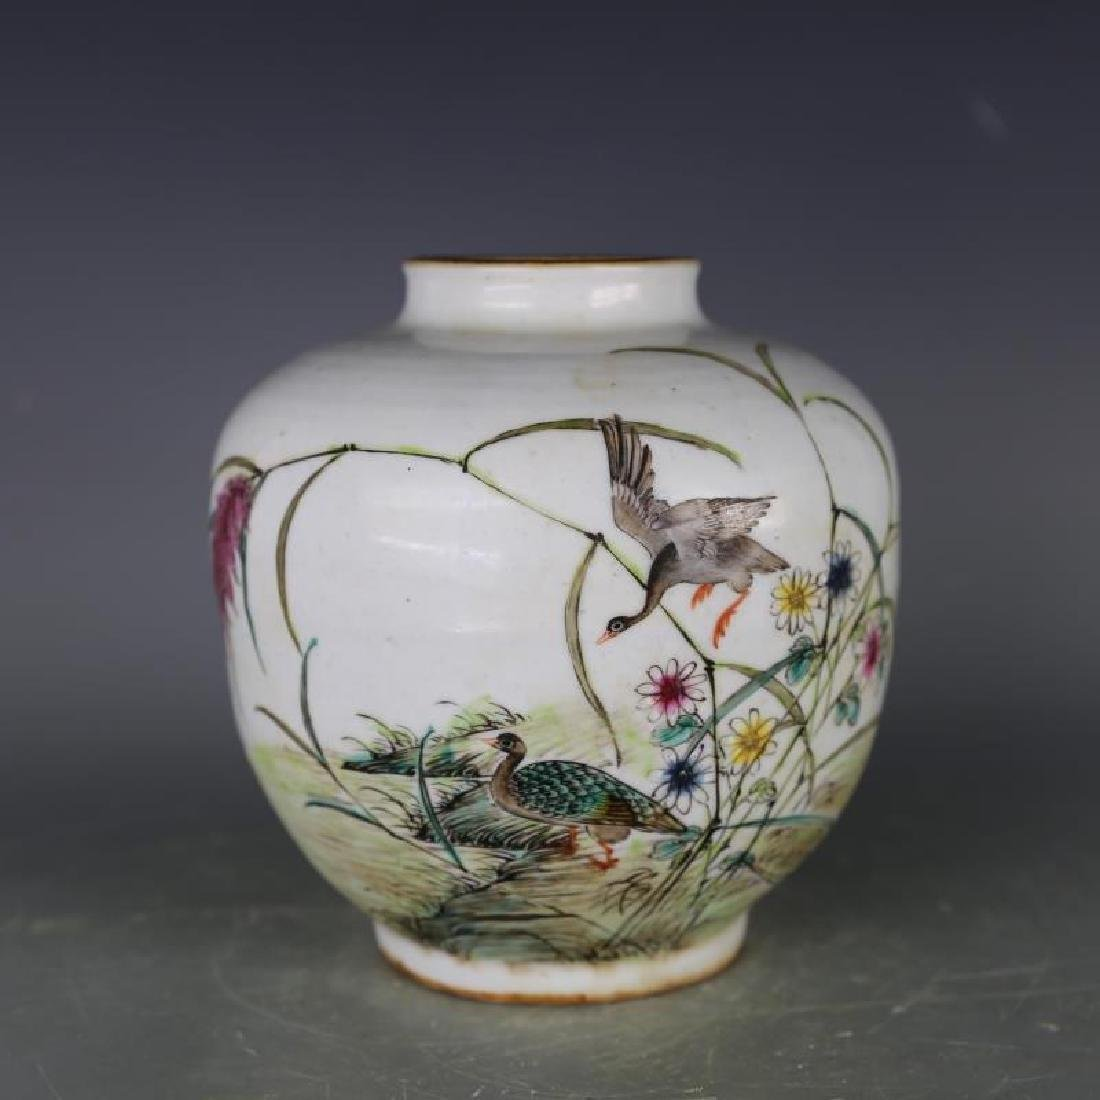 Chinese Qing Dynasty Famille-Rose Porcelain Jar